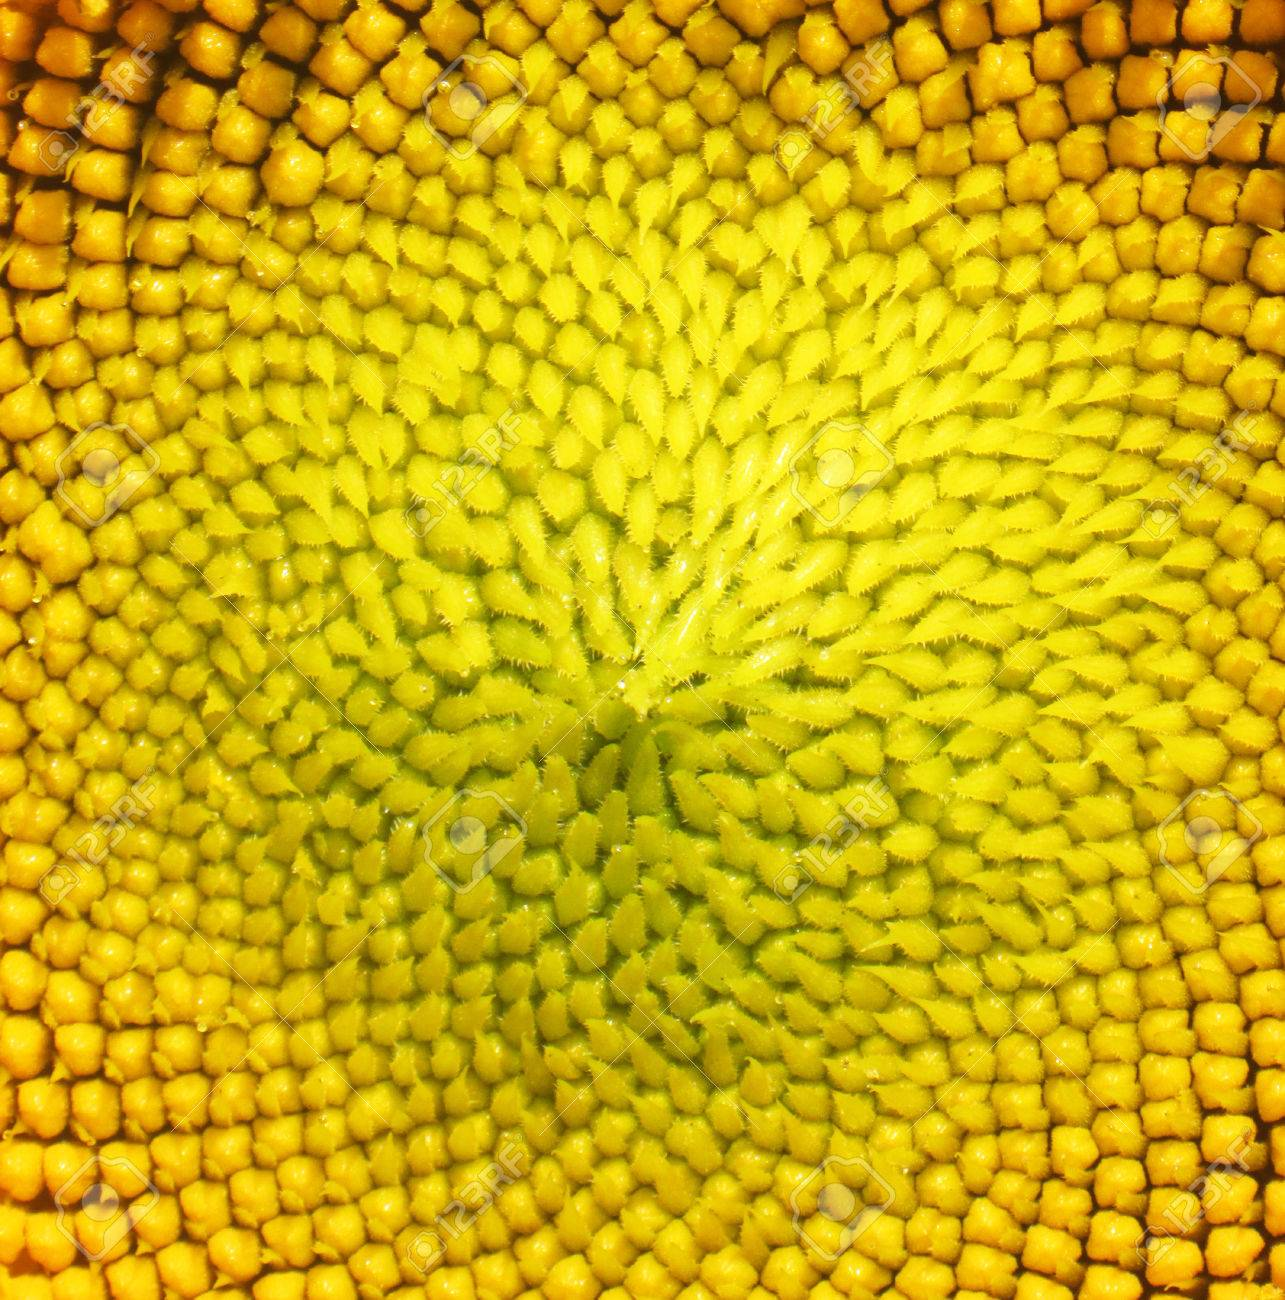 Thousands of tiny sunflowers head surrounded by huge flower